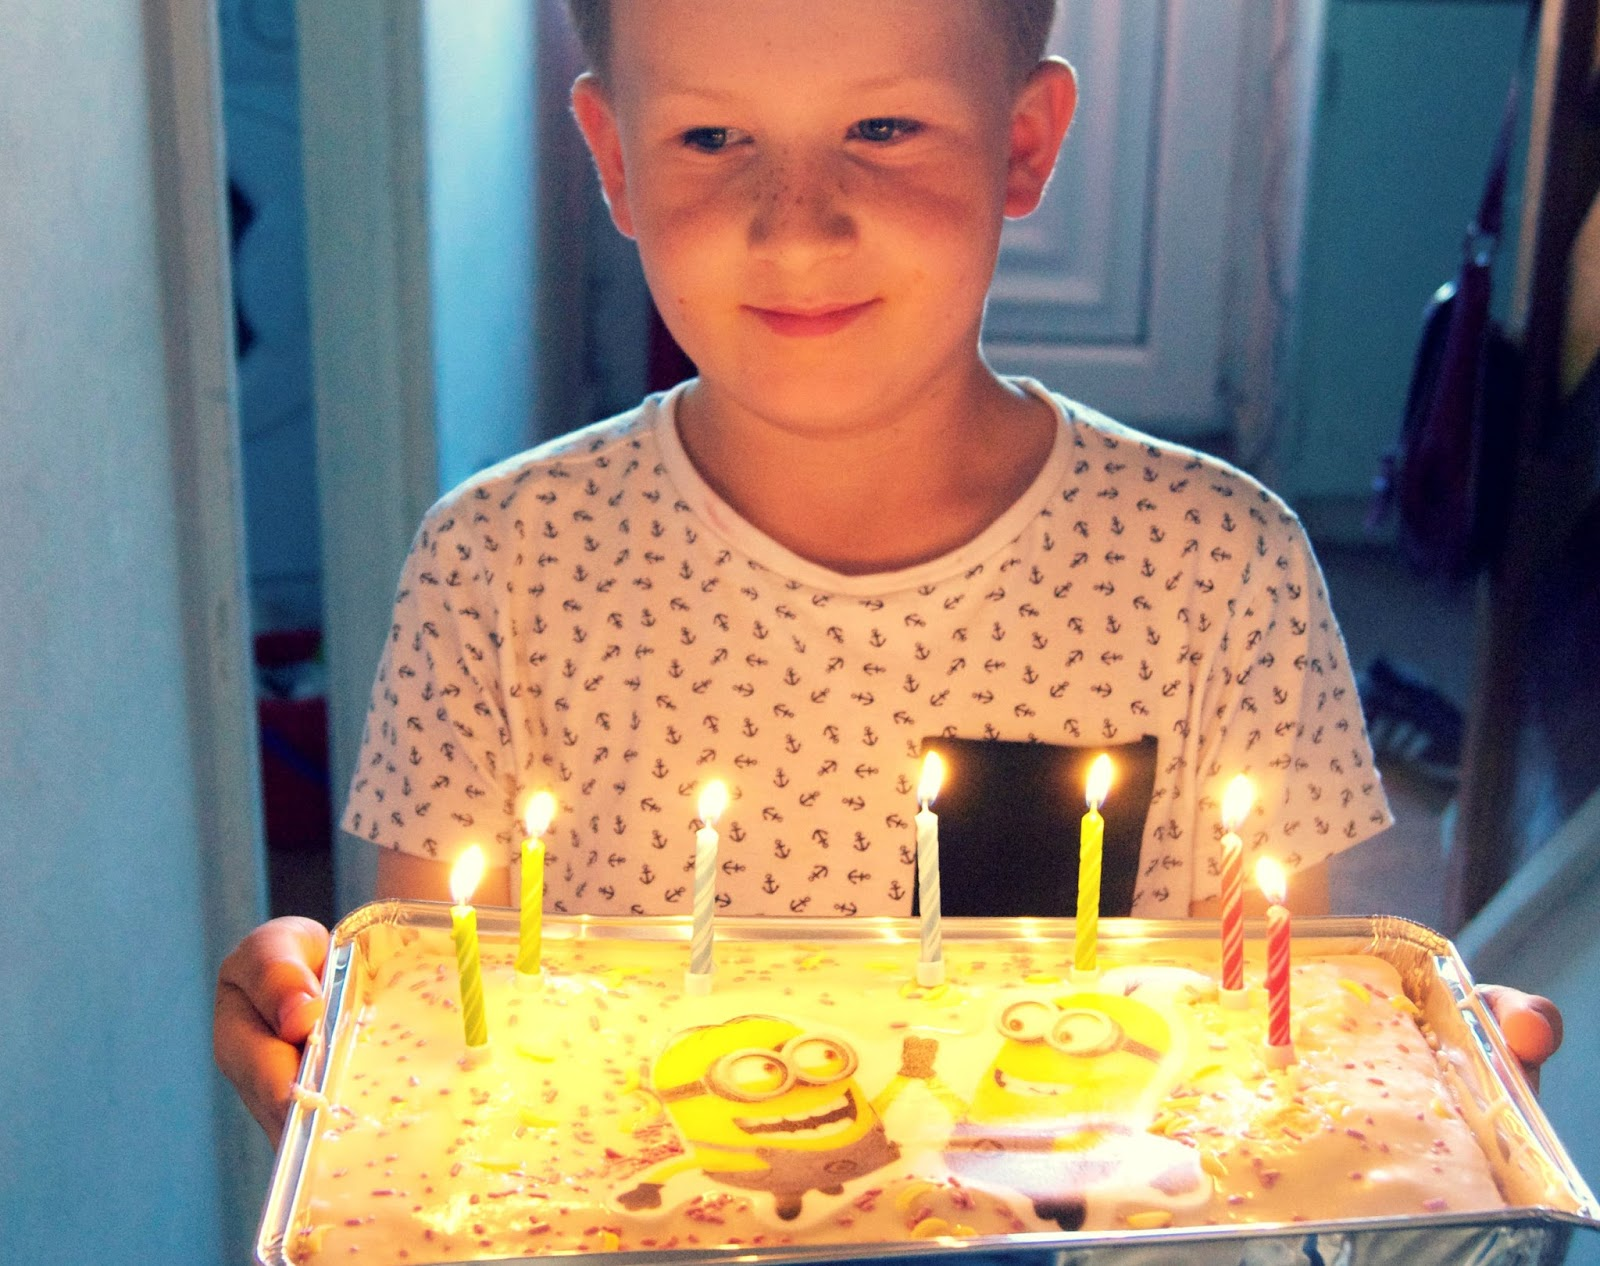 minion cake, living arrows, 29/52, make a wish, birthday, cake, fun, alfie,